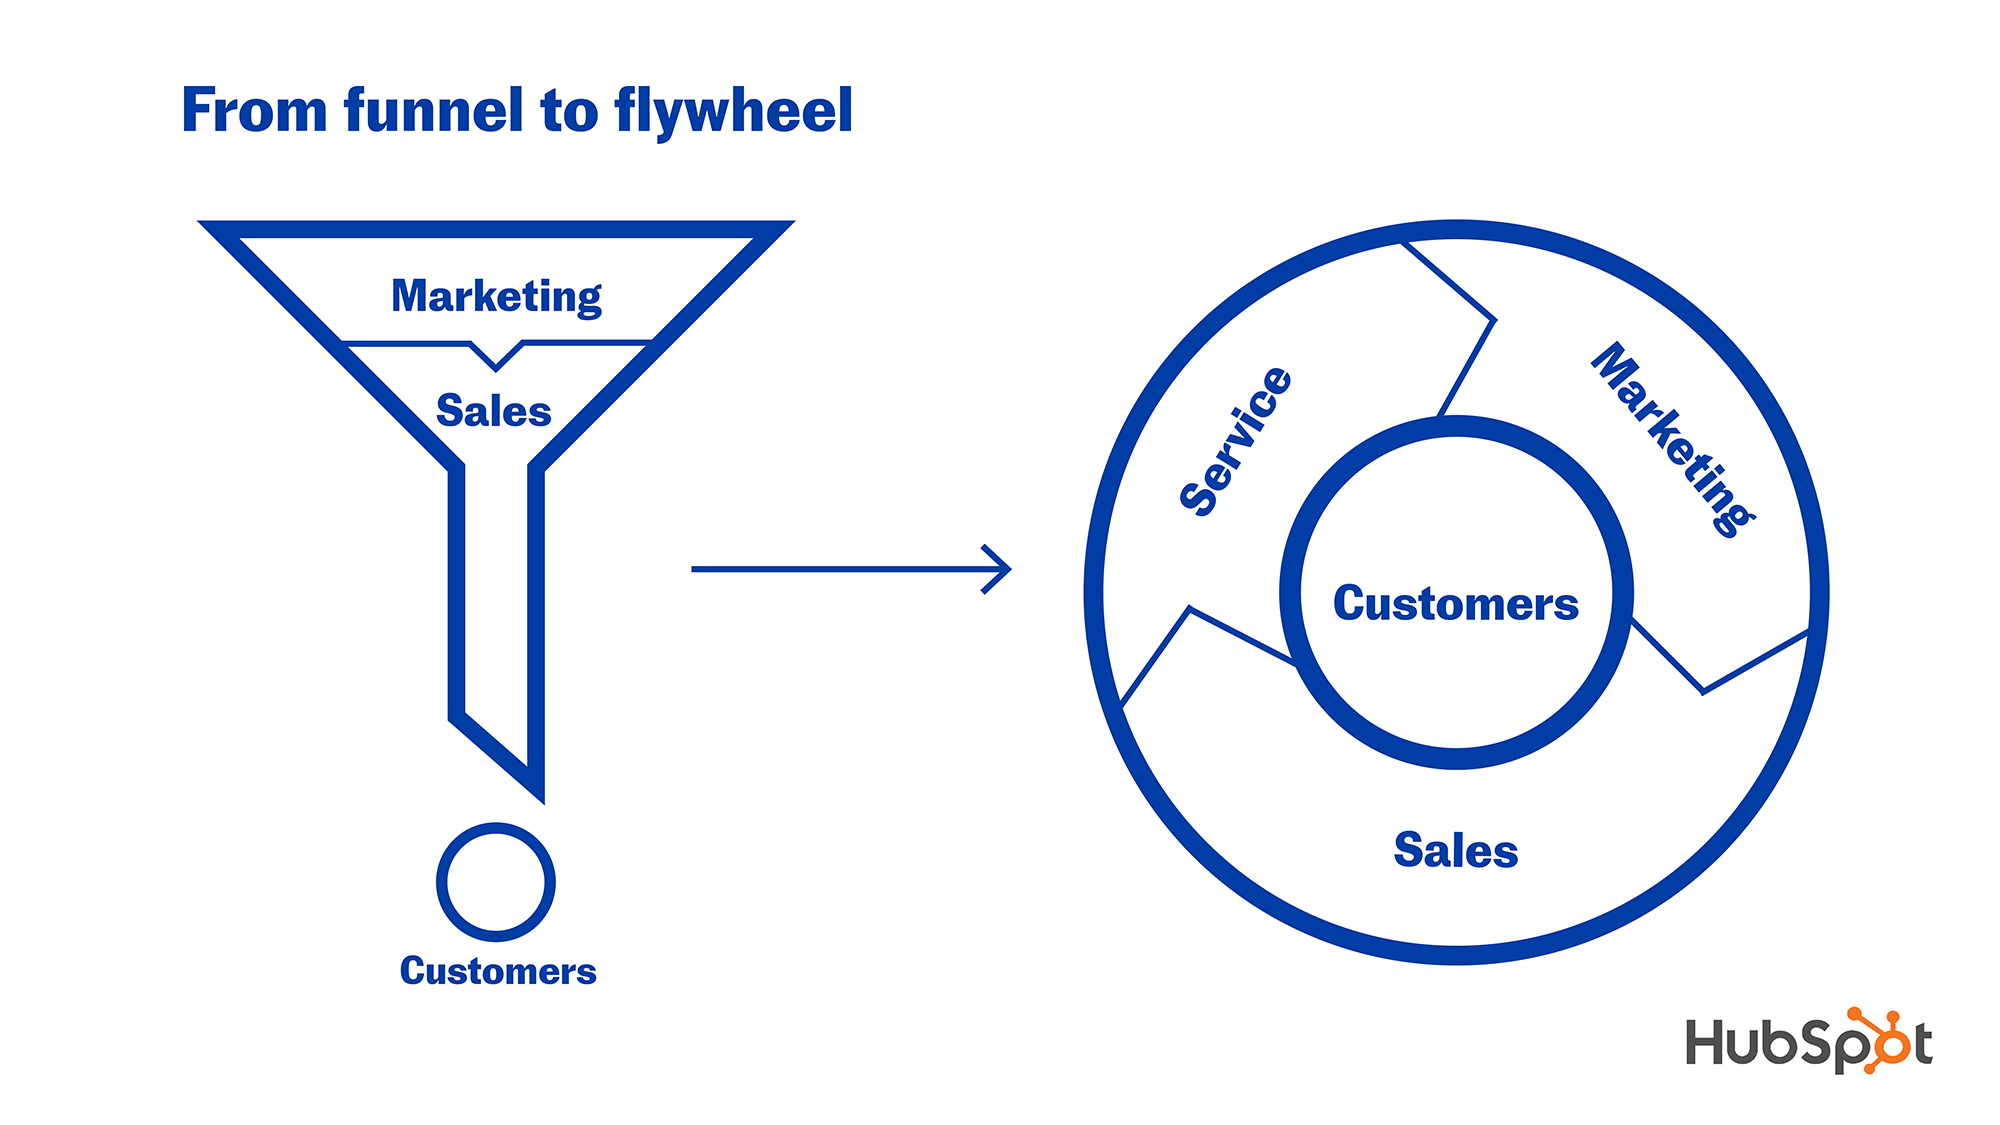 Compares the downward flow of the sales funnel against the circular momentum of the flywheel.